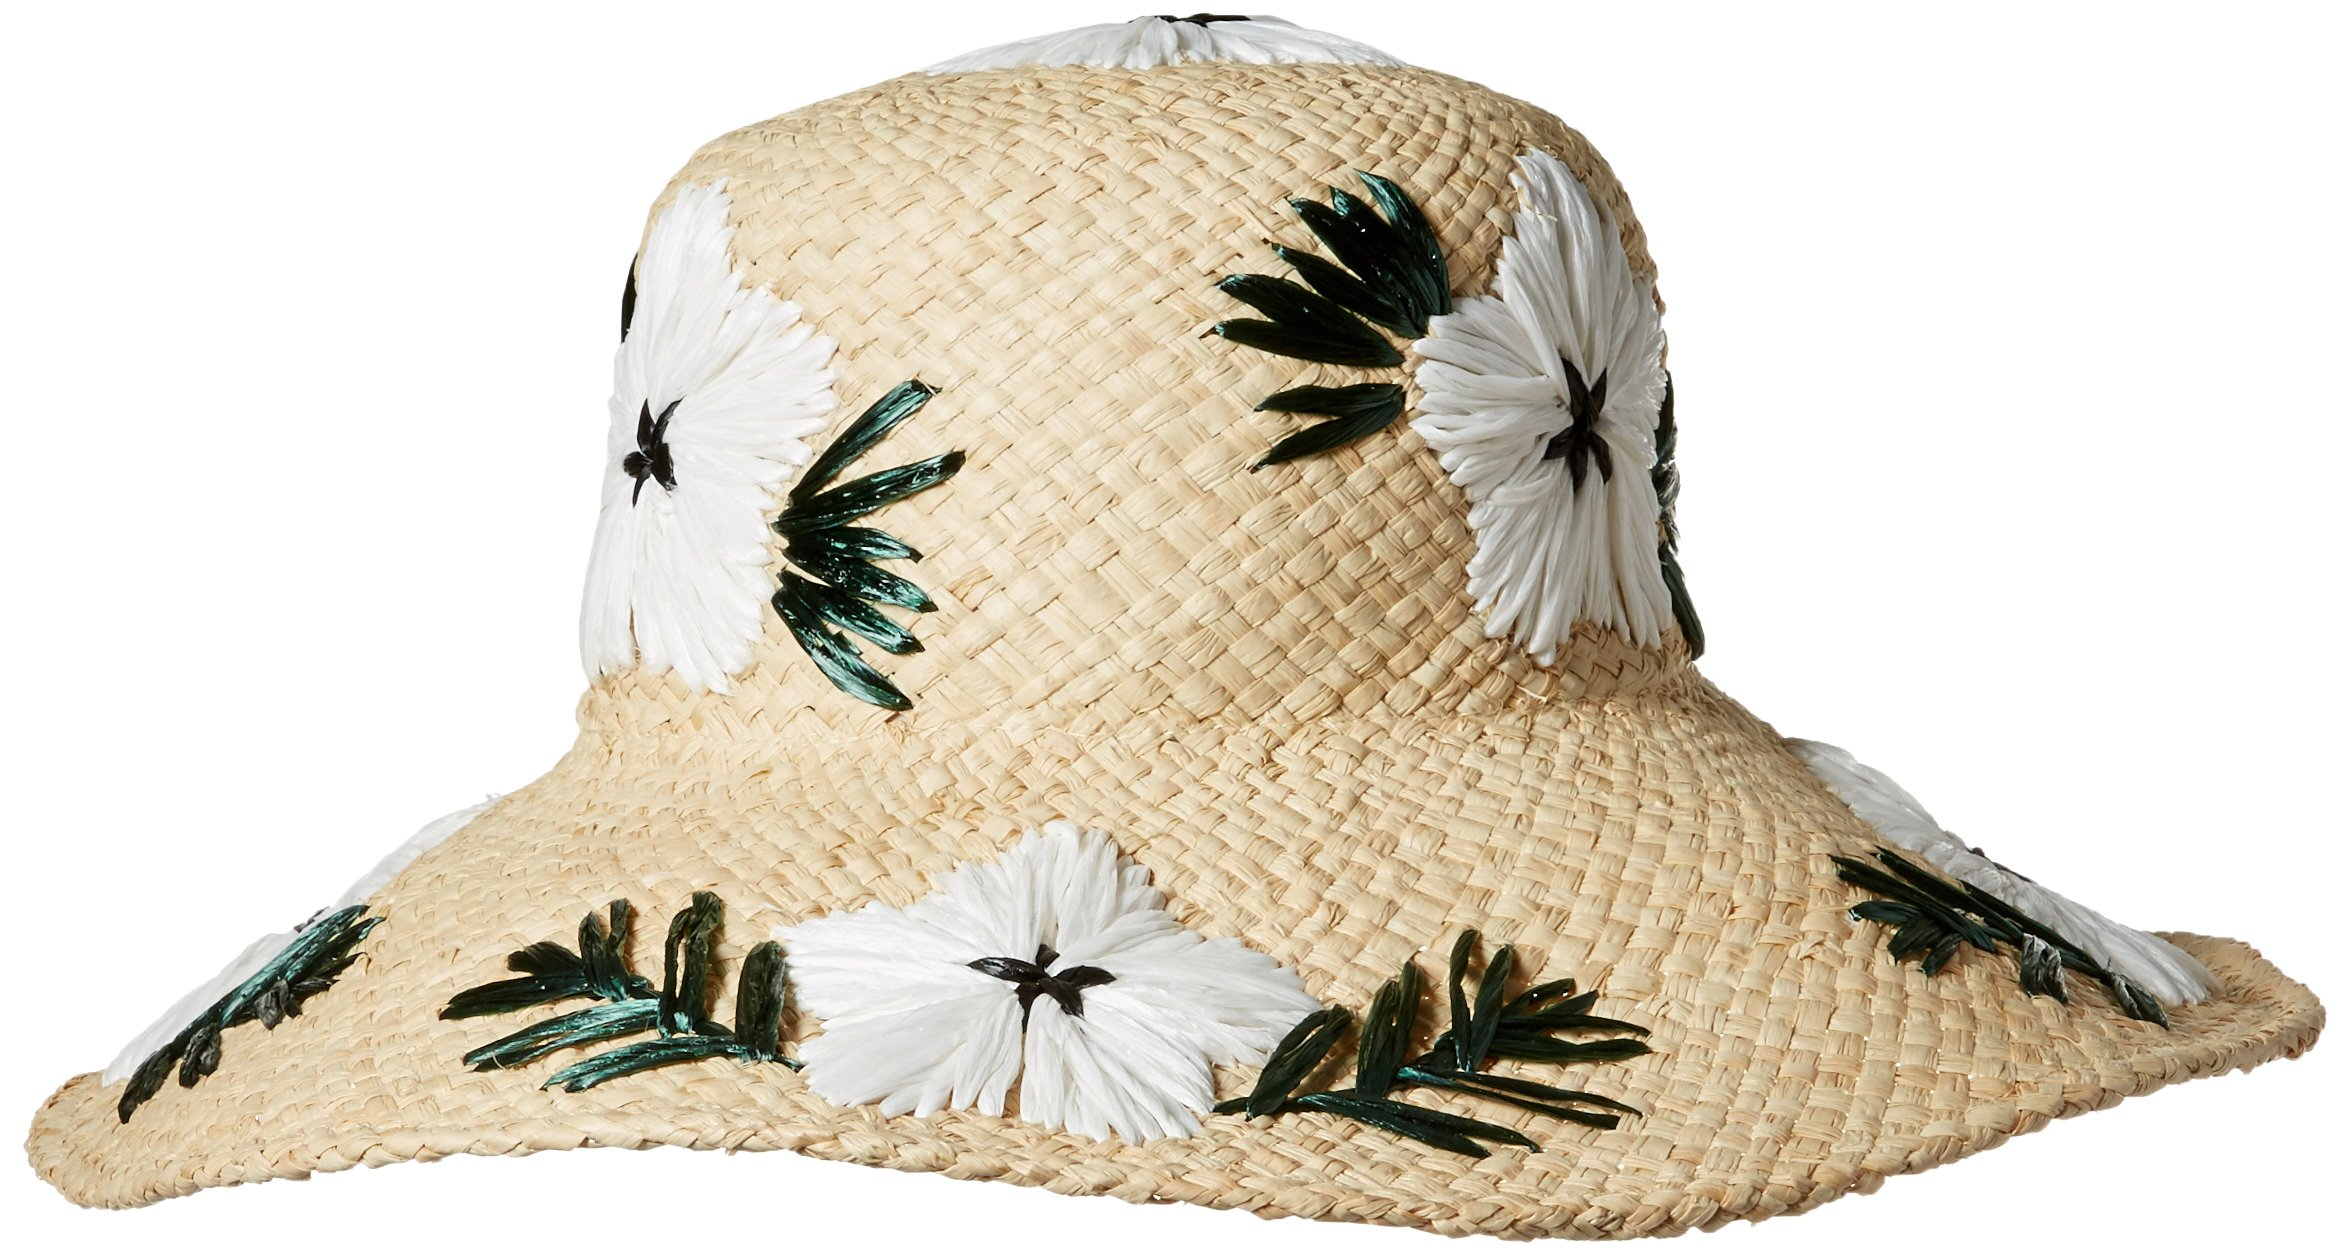 Gottex Women's Punta Cana Raffia Sunhat Packable, Adjustable and Upf Rated, Natural/White, One Size